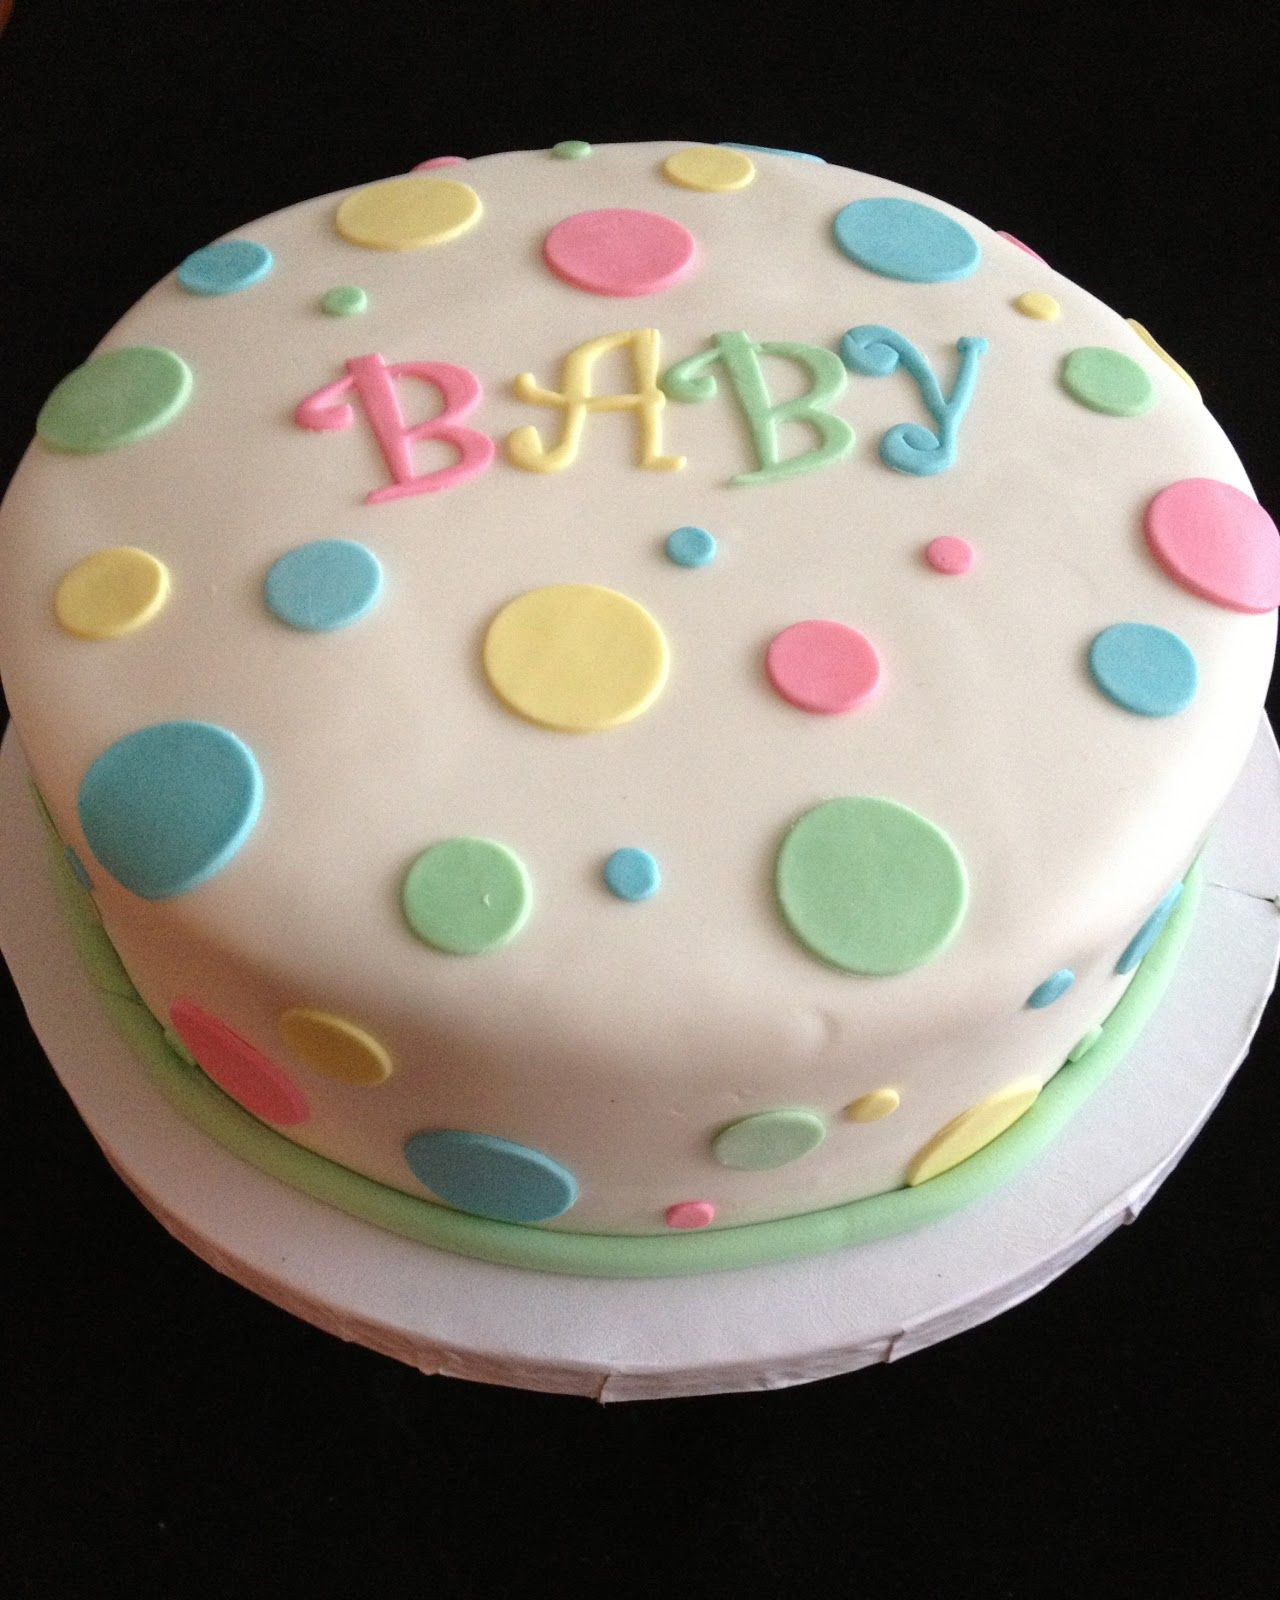 Simple Cake Decorating Ideas For Baby Shower : Easy Baby Shower Cake Ideas unofficial shot of the cake ...